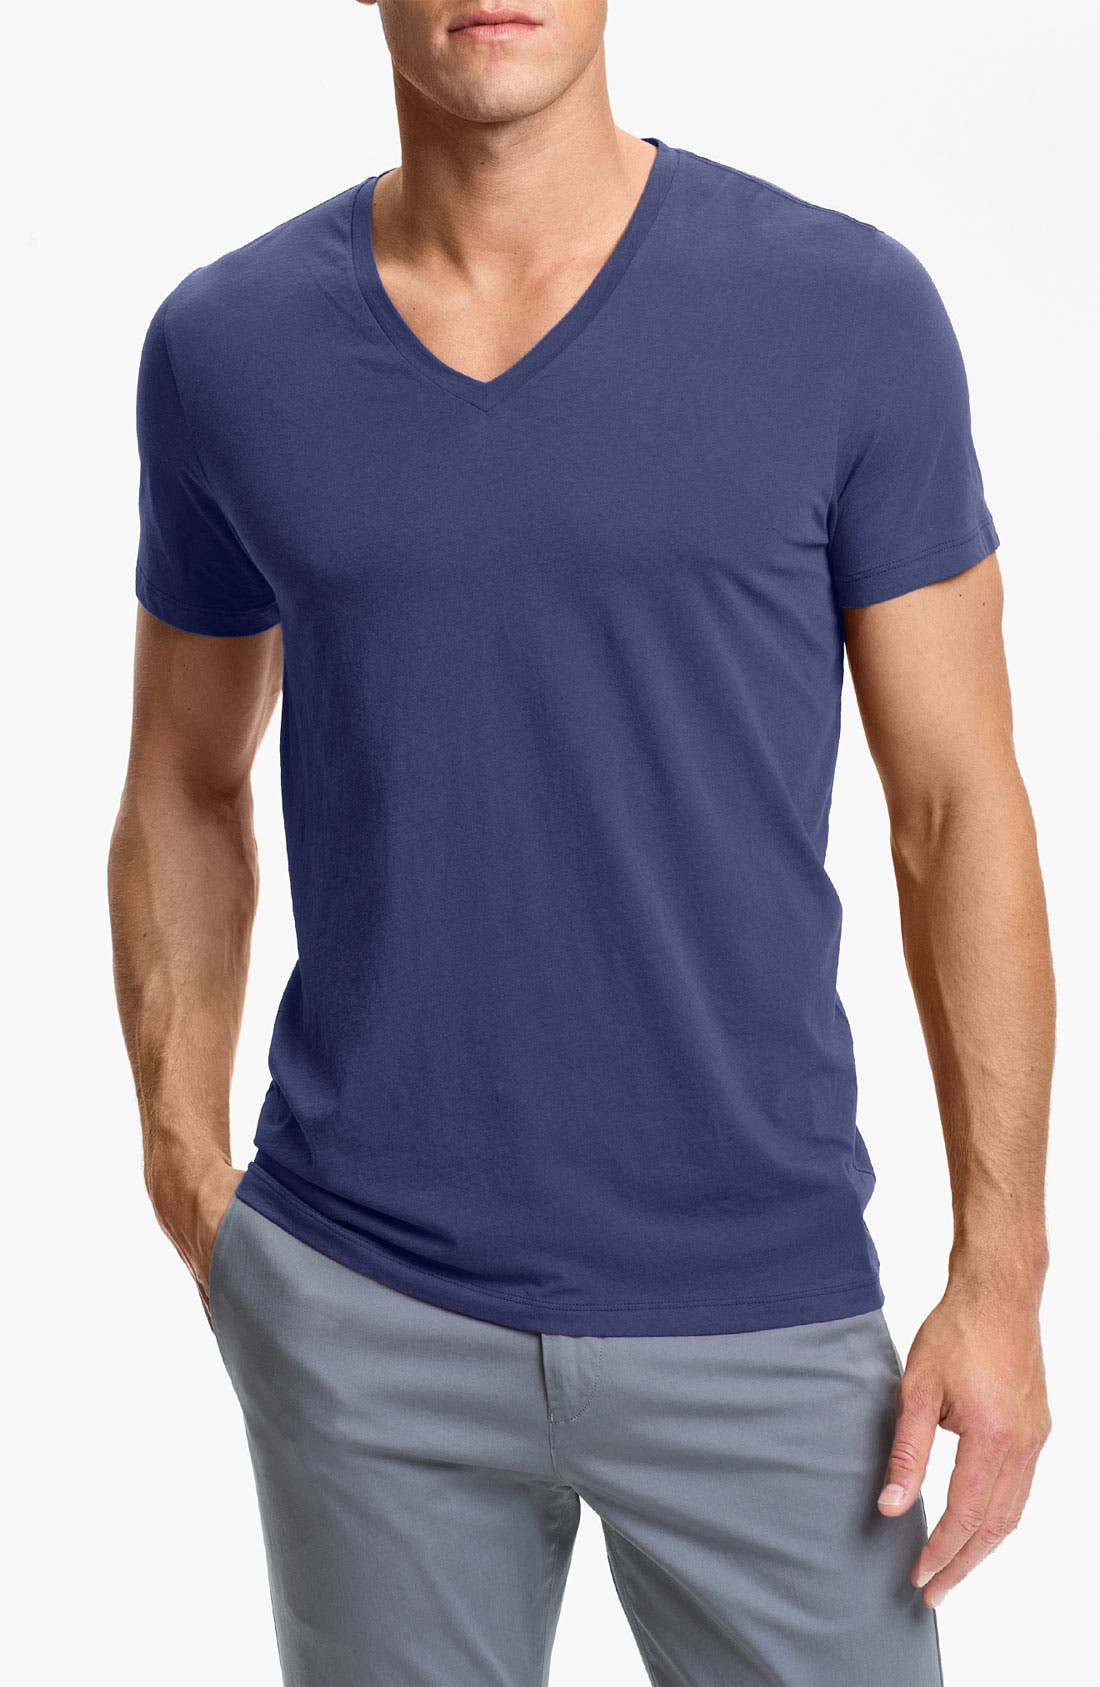 Alternate Image 1 Selected - Theory 'Bedros' V-Neck T-Shirt